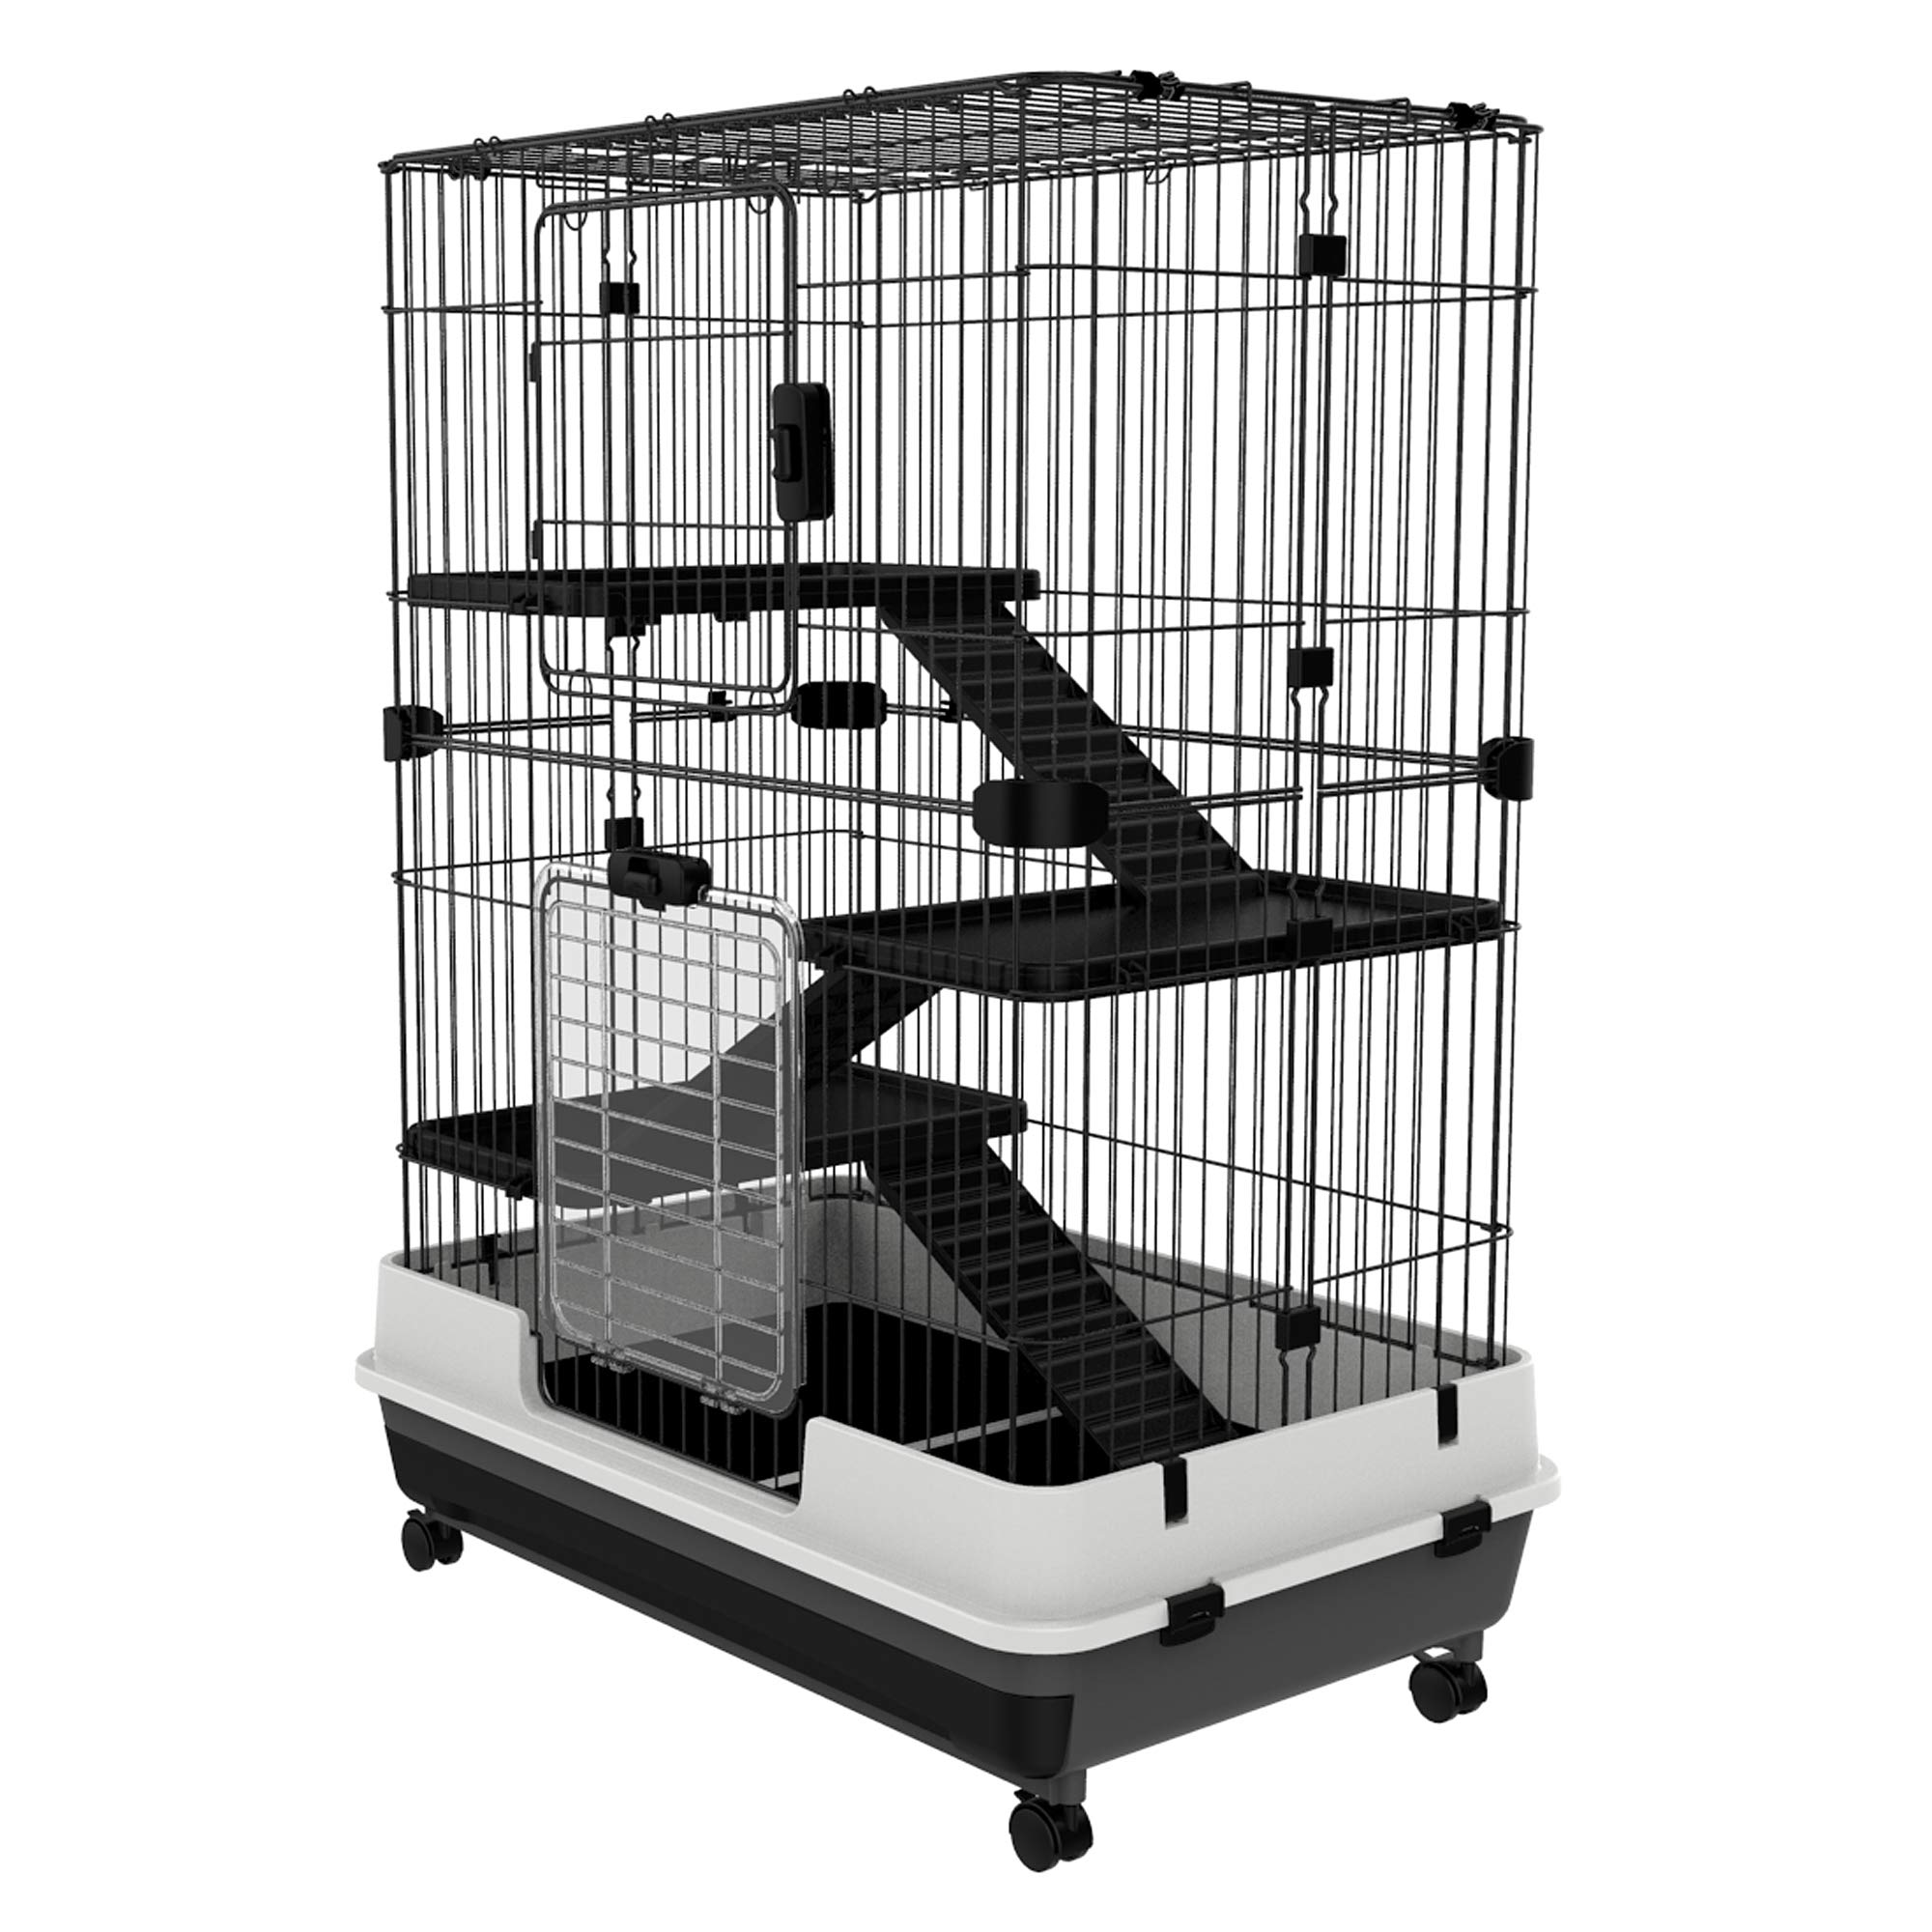 PawHut 32''L 4-Level Indoor Small Animal Rabbit Cage with Wheels - Black by PawHut